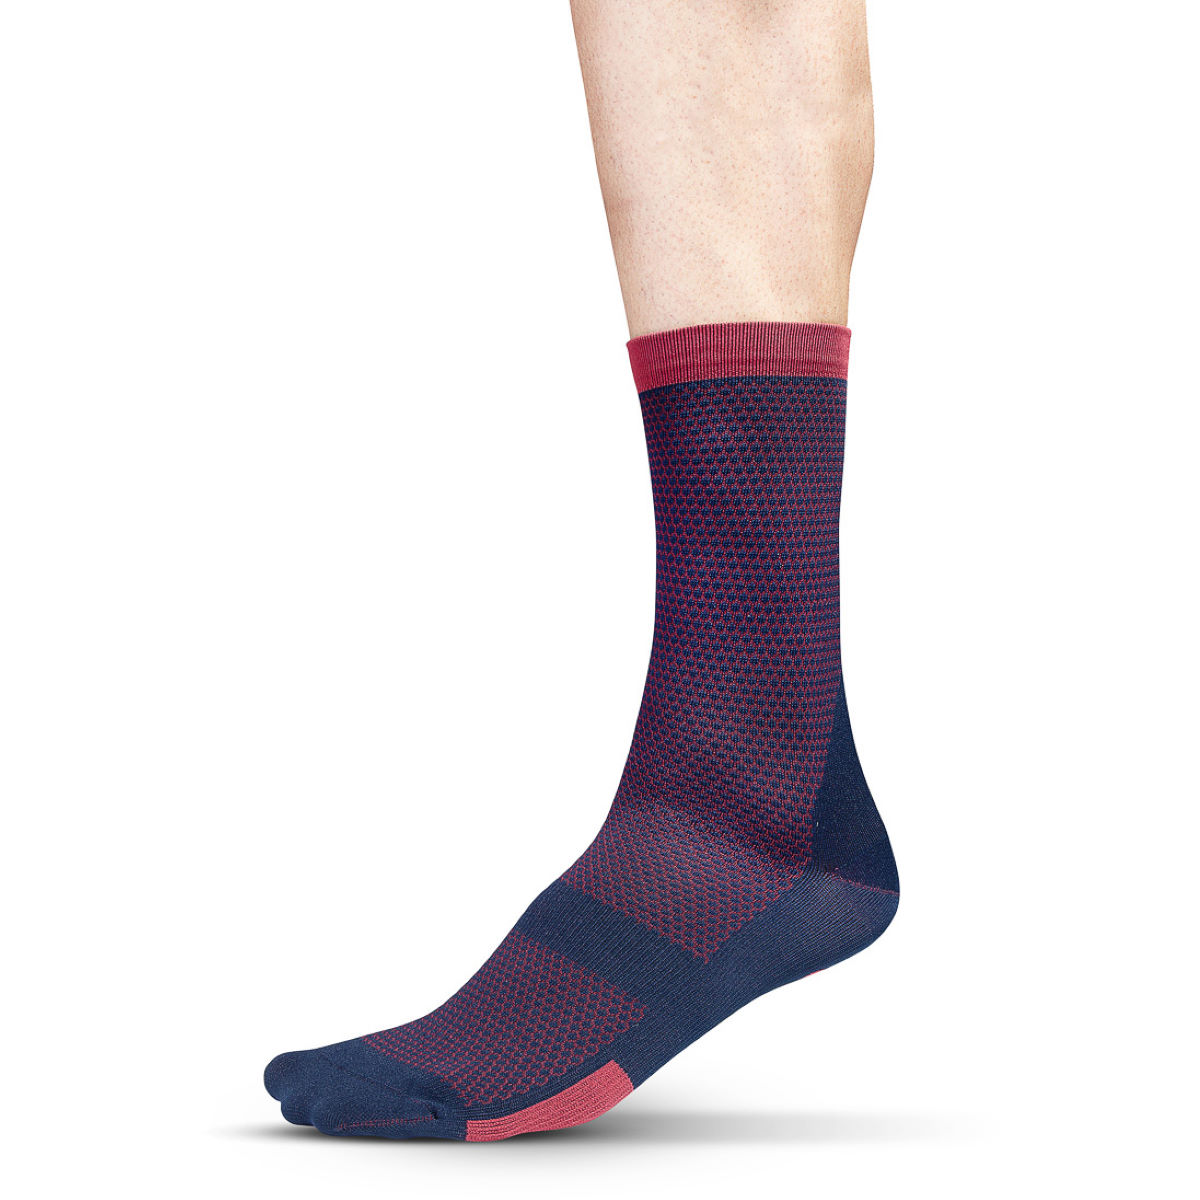 Chaussettes Isadore Albula Climbers - L/XL Blue/Red Chaussettes vélo